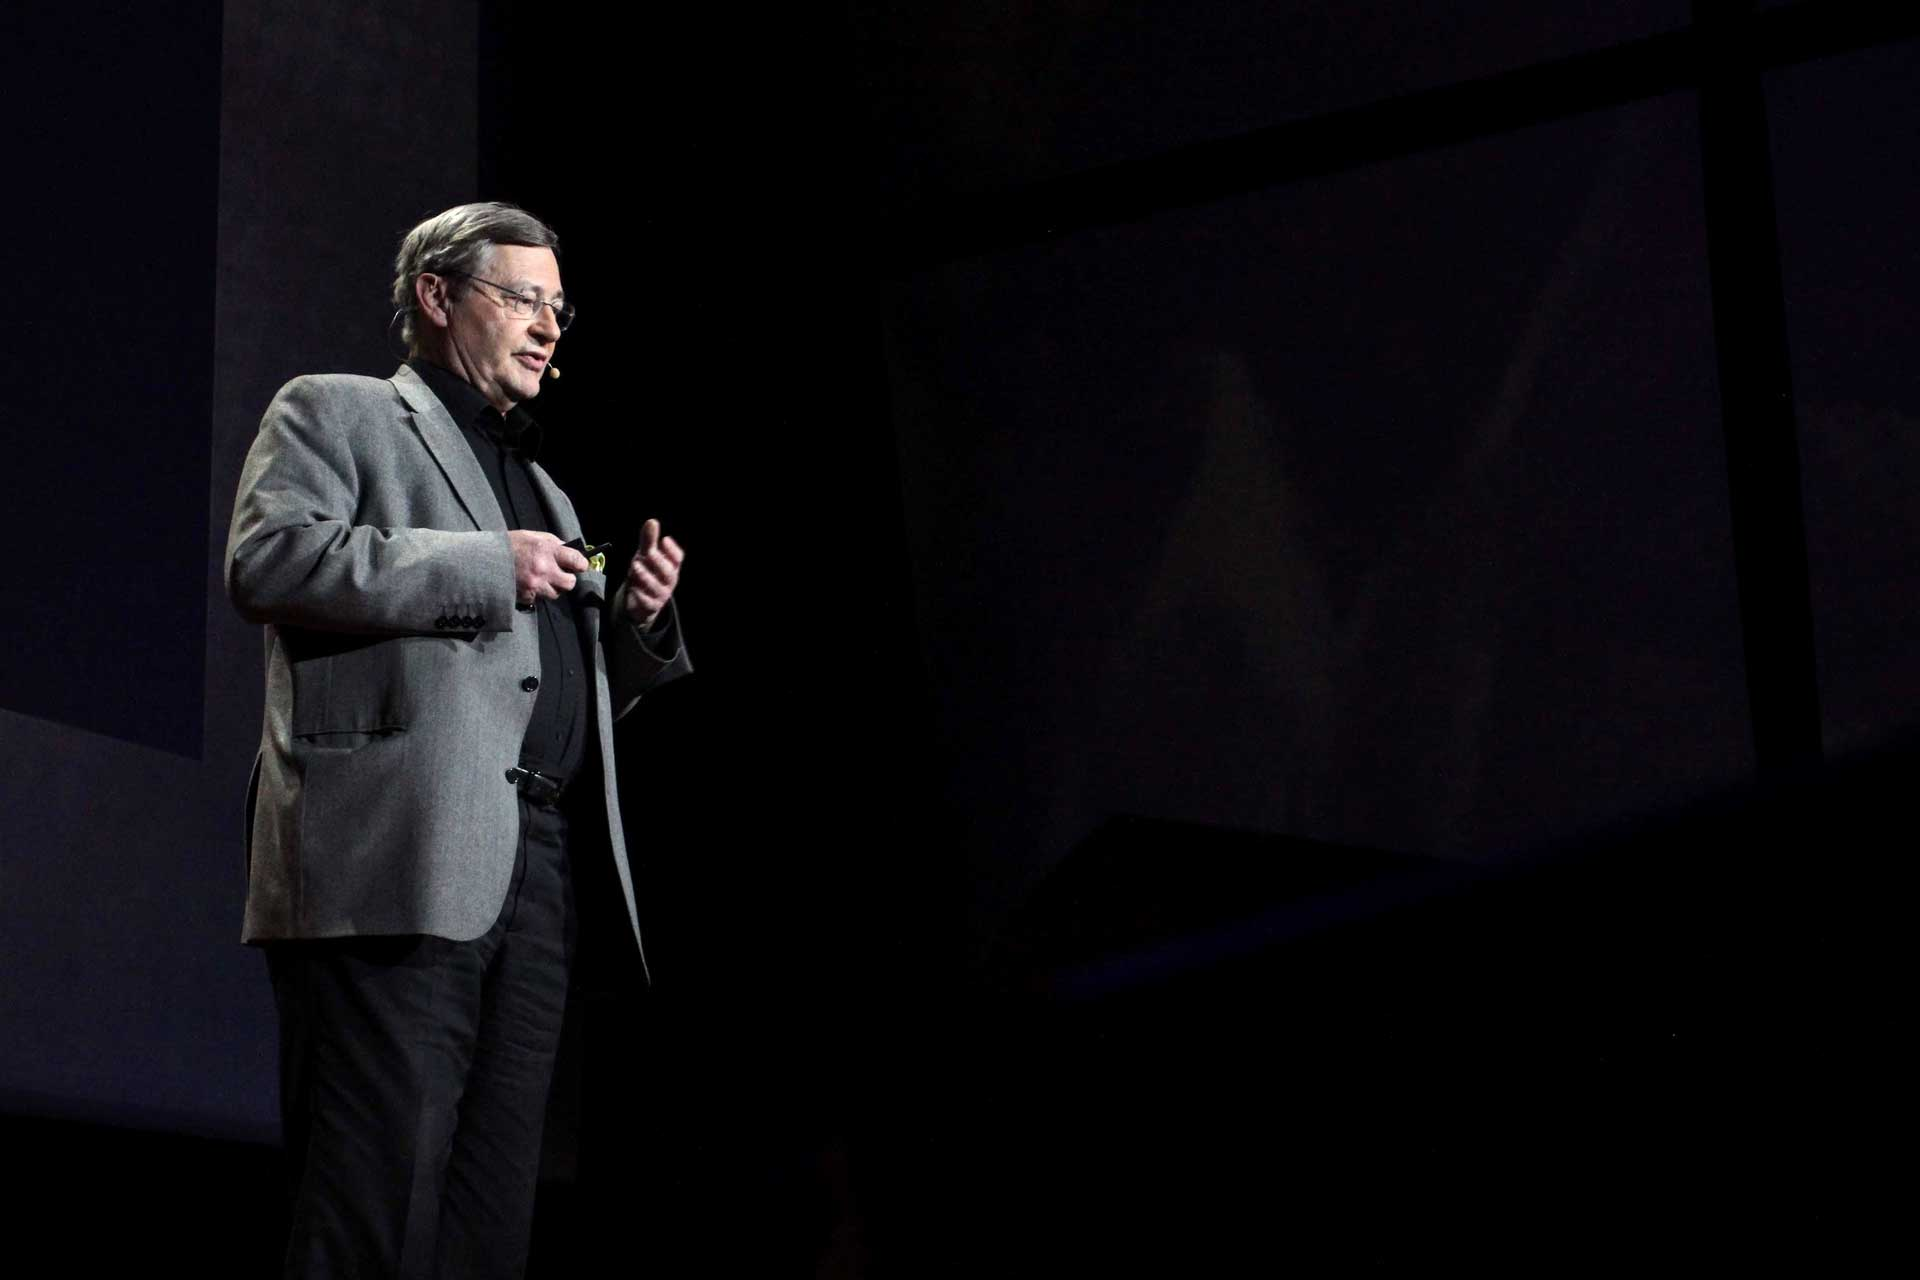 conference-TEDxParis-2013-22.jpg